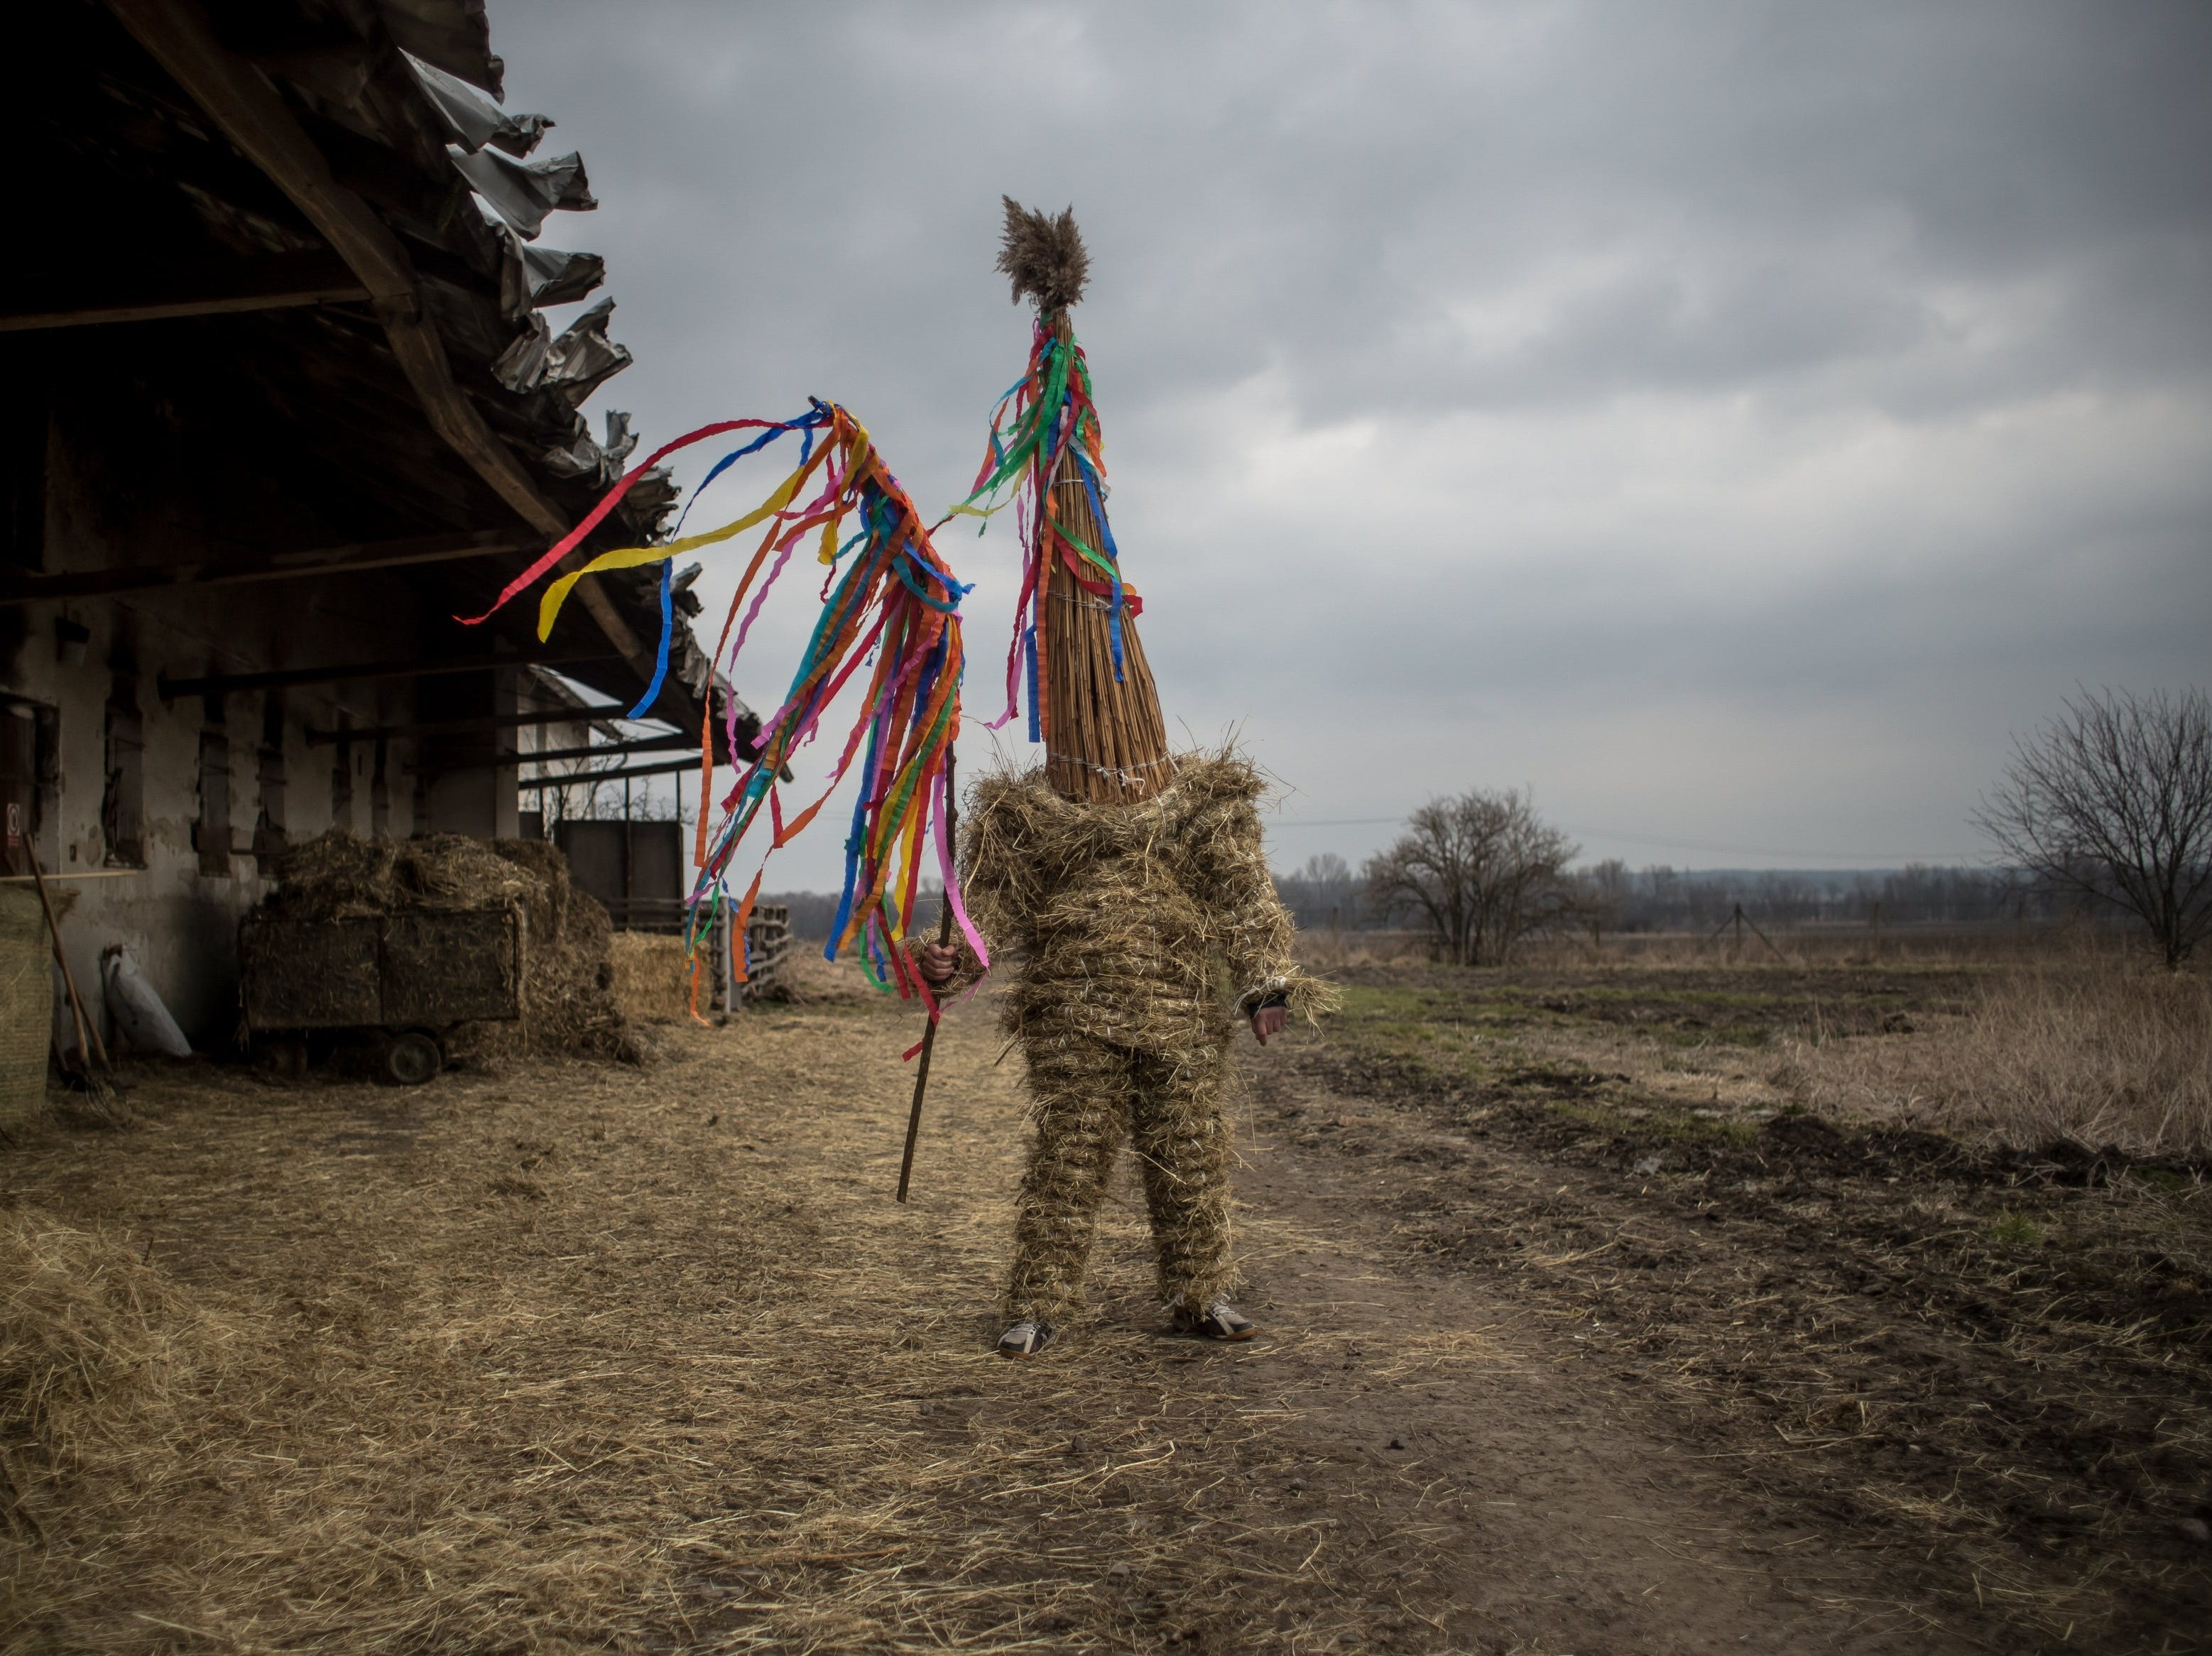 March 31, 2018: A boy dressed in hay suit prepares for an Easter procession called 'Marching Judas' in the village of Stradoun, Czech Republic.